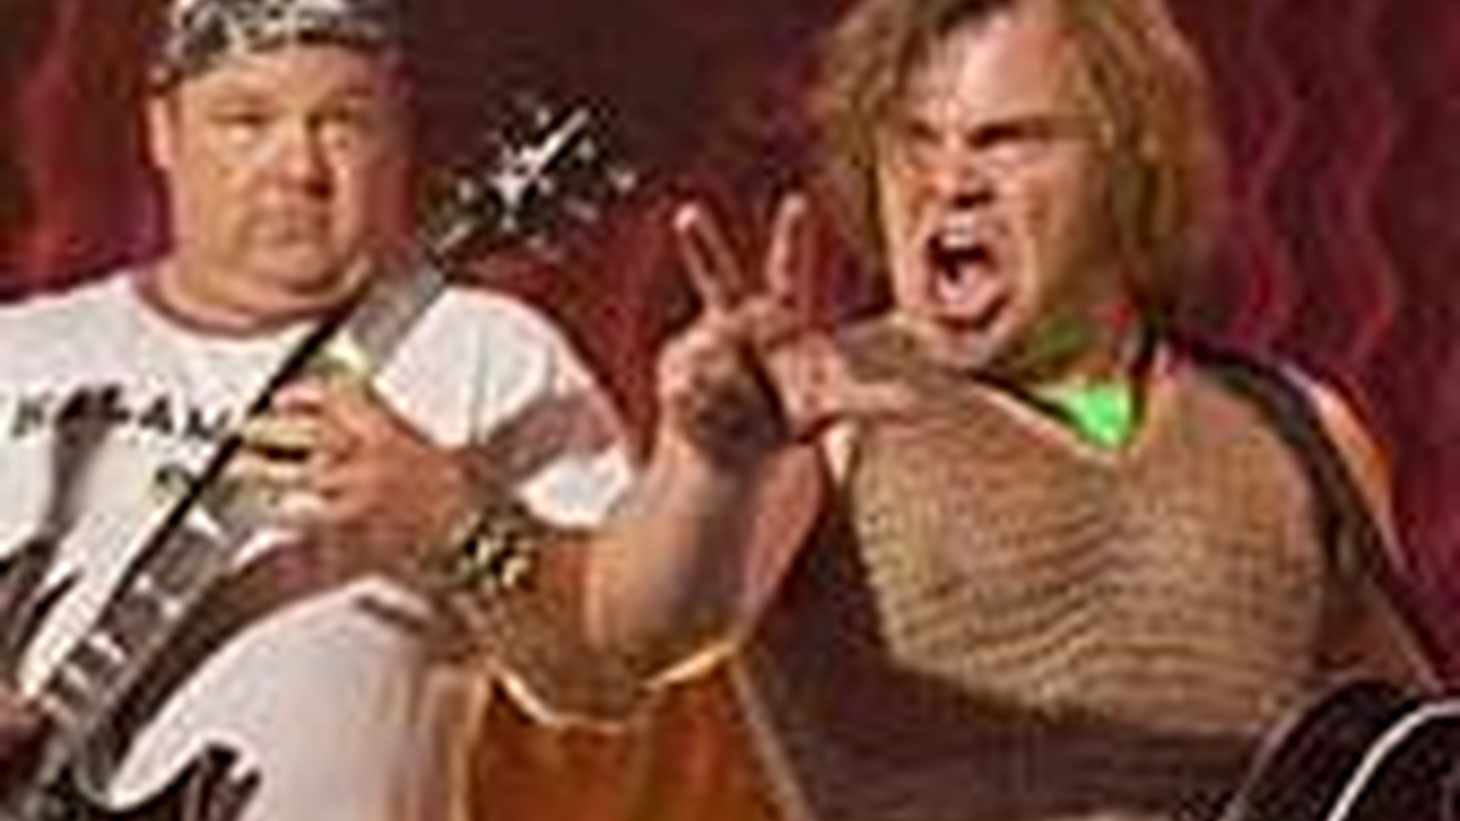 Jack Black and Kyle Gass aka Tenacious D, will join Gary Calamar as guest dj's on The Open Road for some rockin good holiday fun at 10pm. The acoustic metal comedy duo are performing at a benefit show for democratic nominee John Kerry at the Knitting Factory on June 6. Concerts for Kerry. It promises to be a memorable memorial day show.